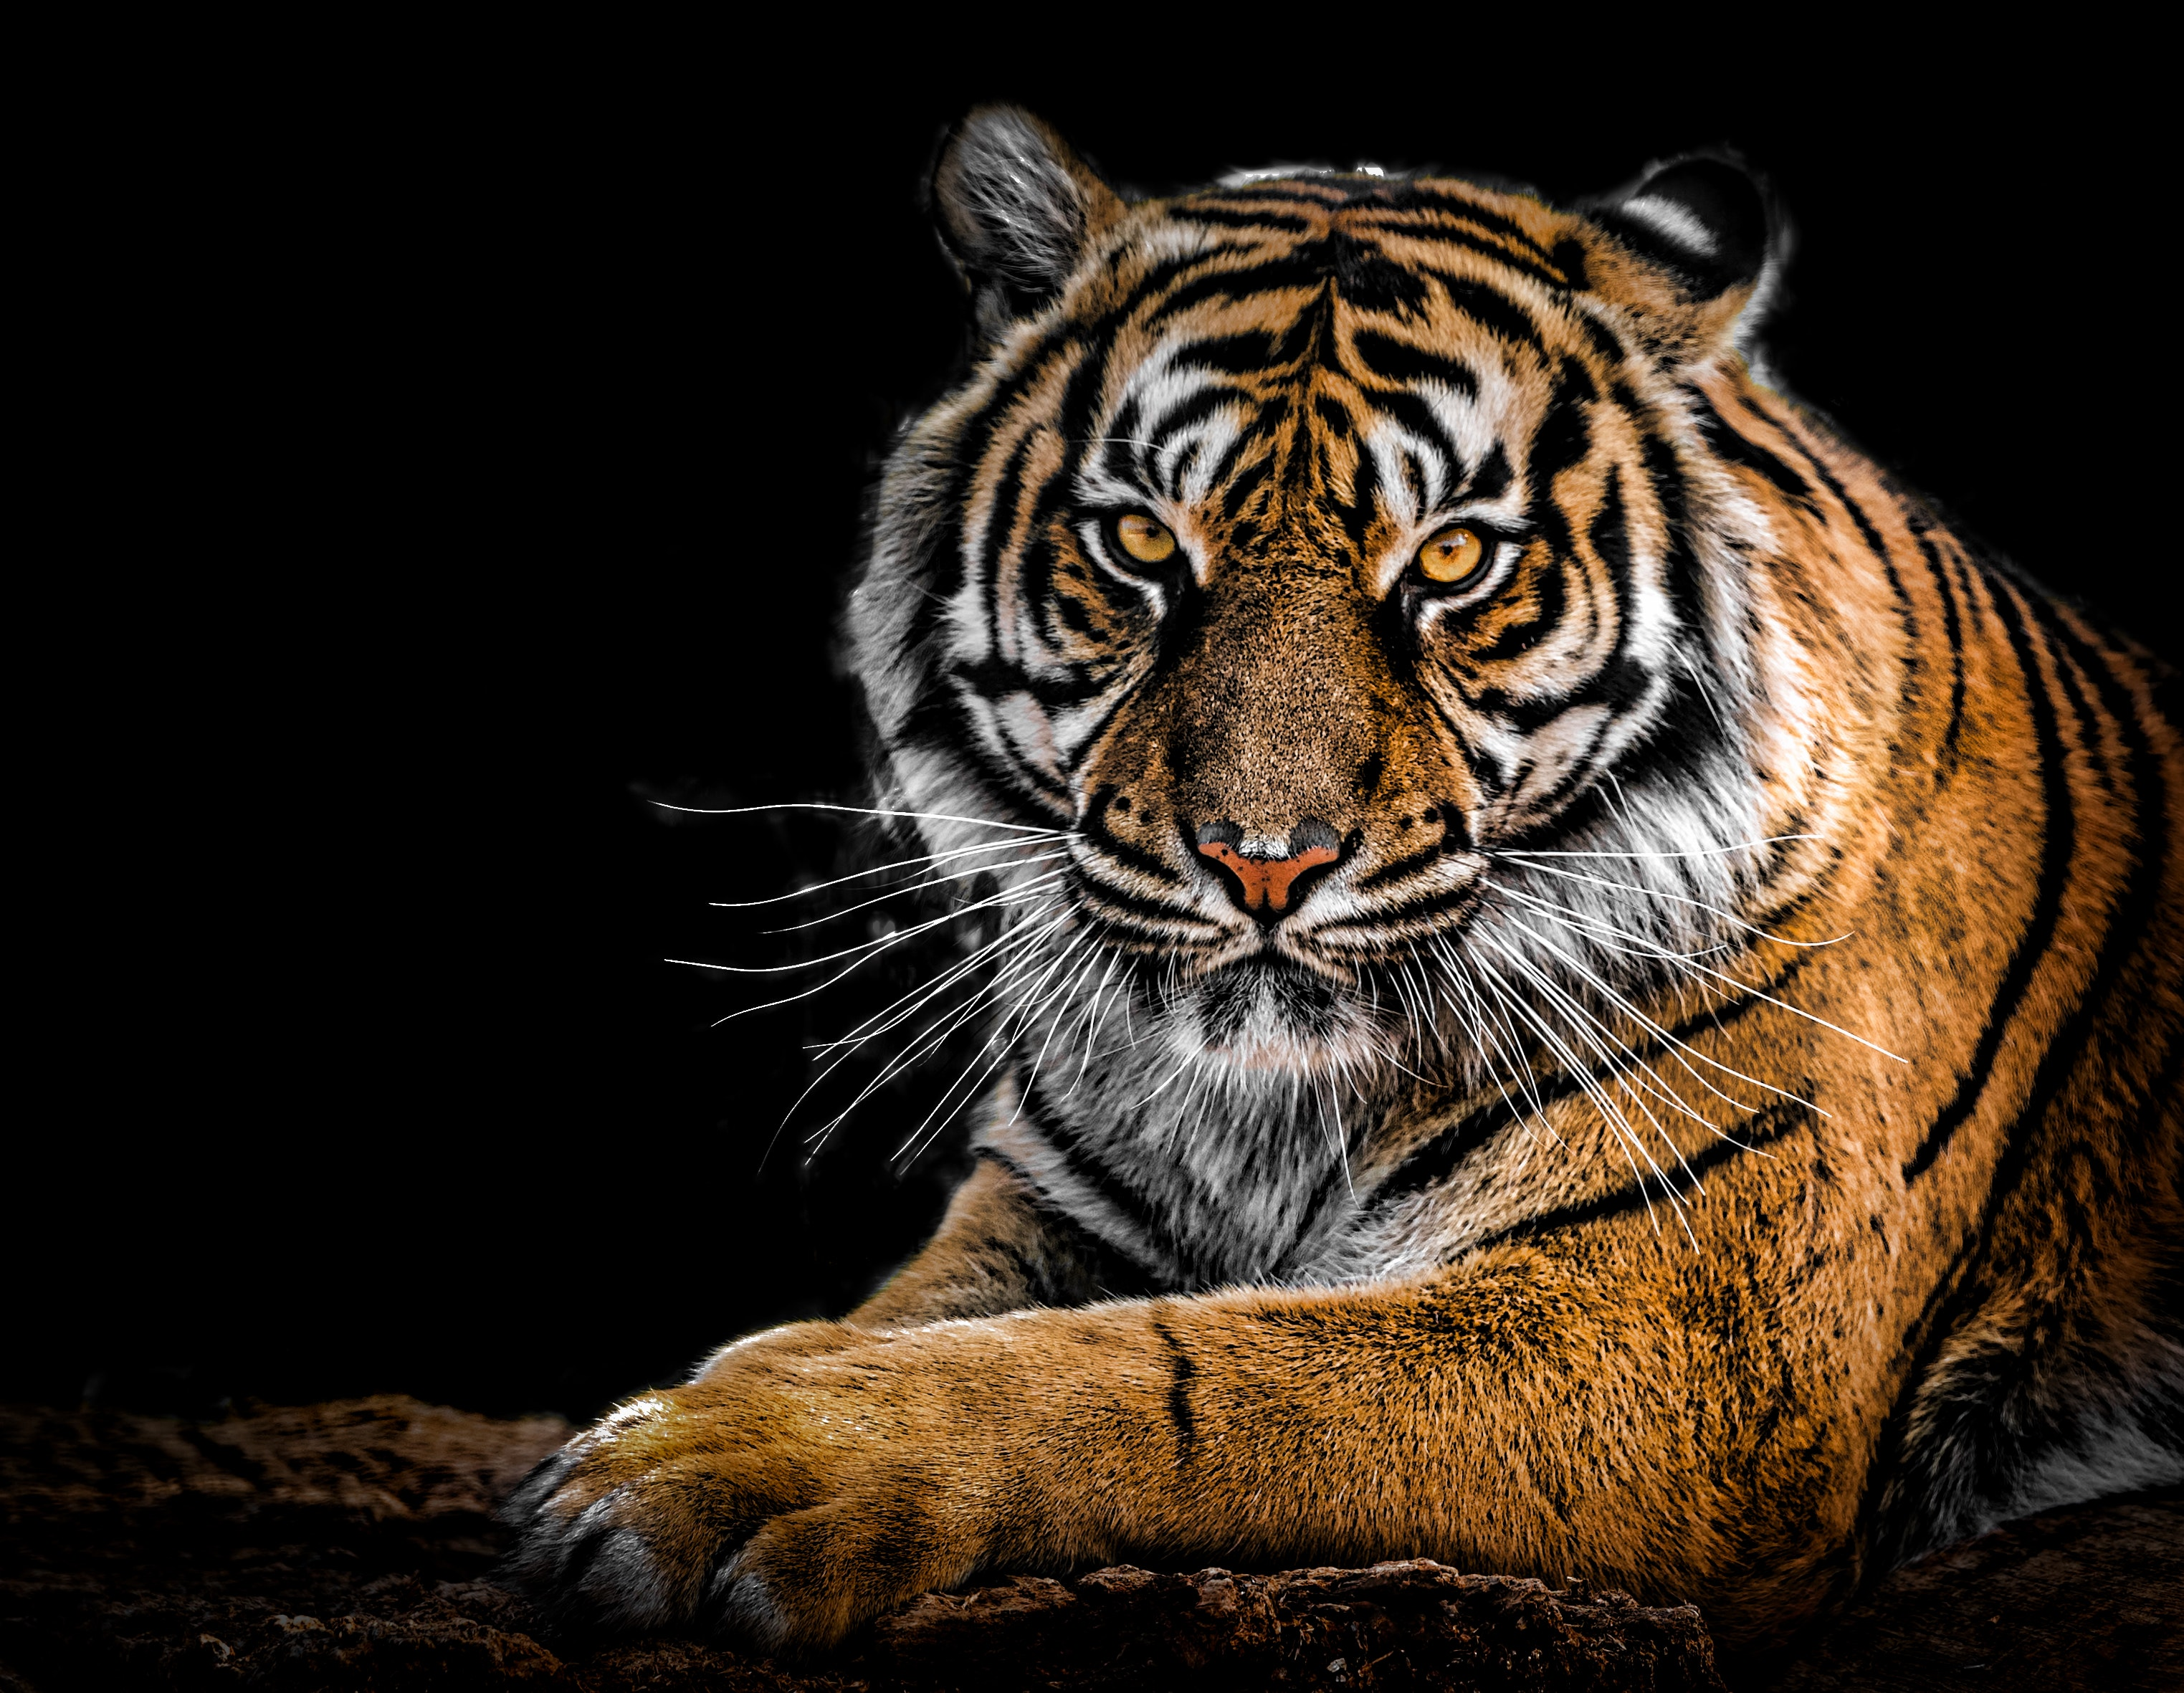 close-up photography of tiger · free stock photo